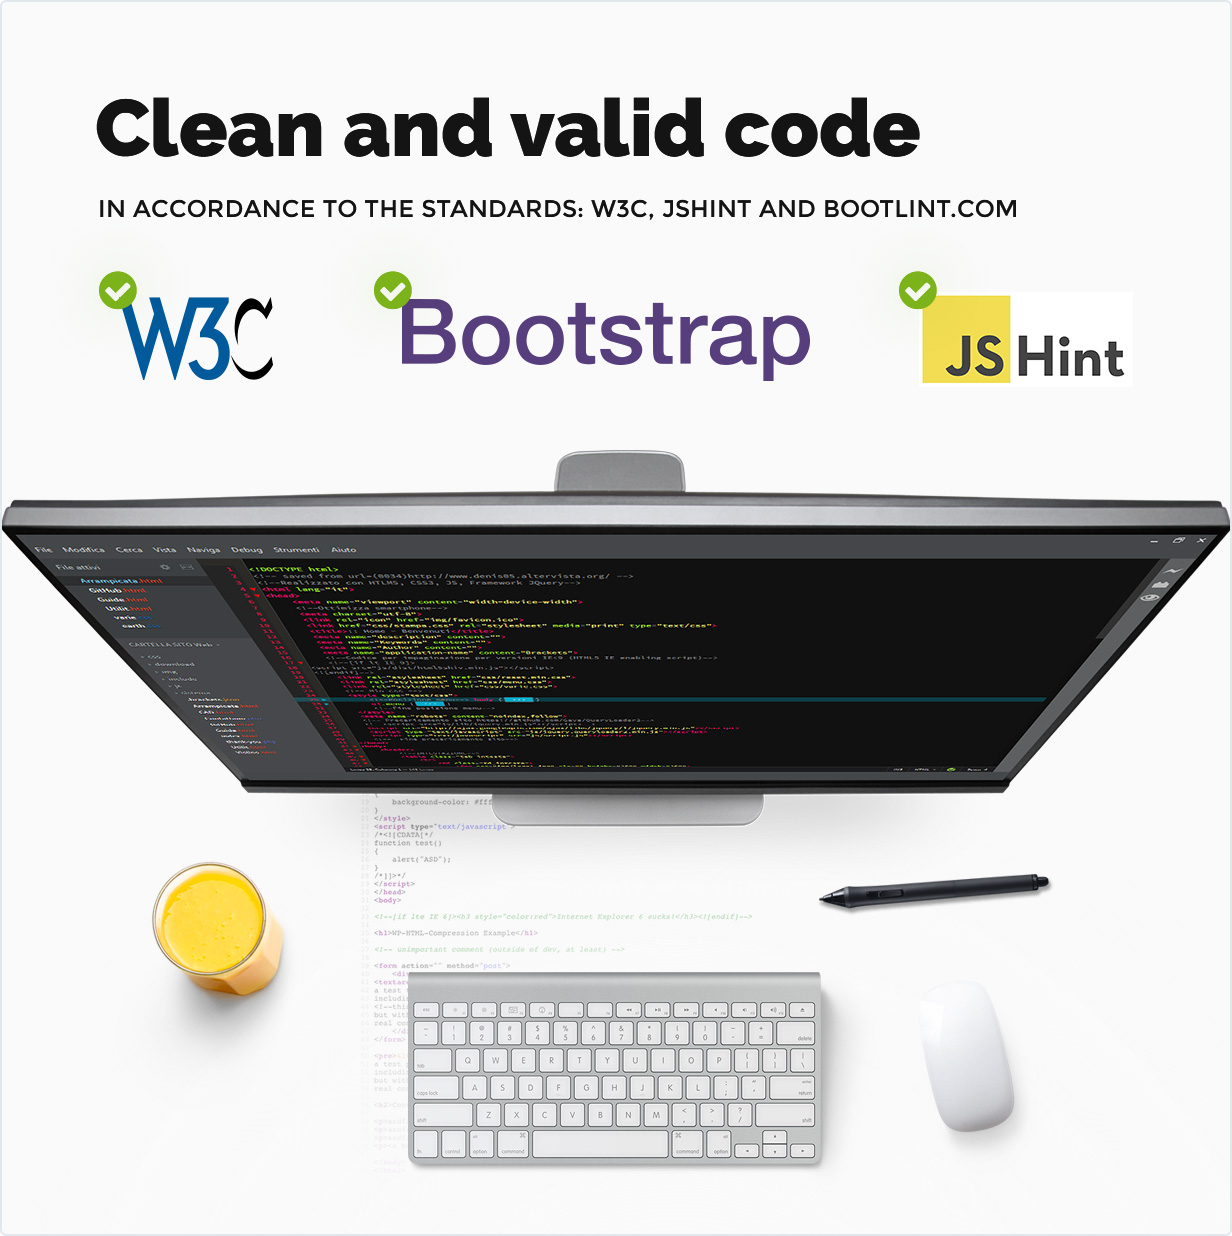 Clean and valid code in accordance to the standards: W3C, JSHINT и bootlint.com